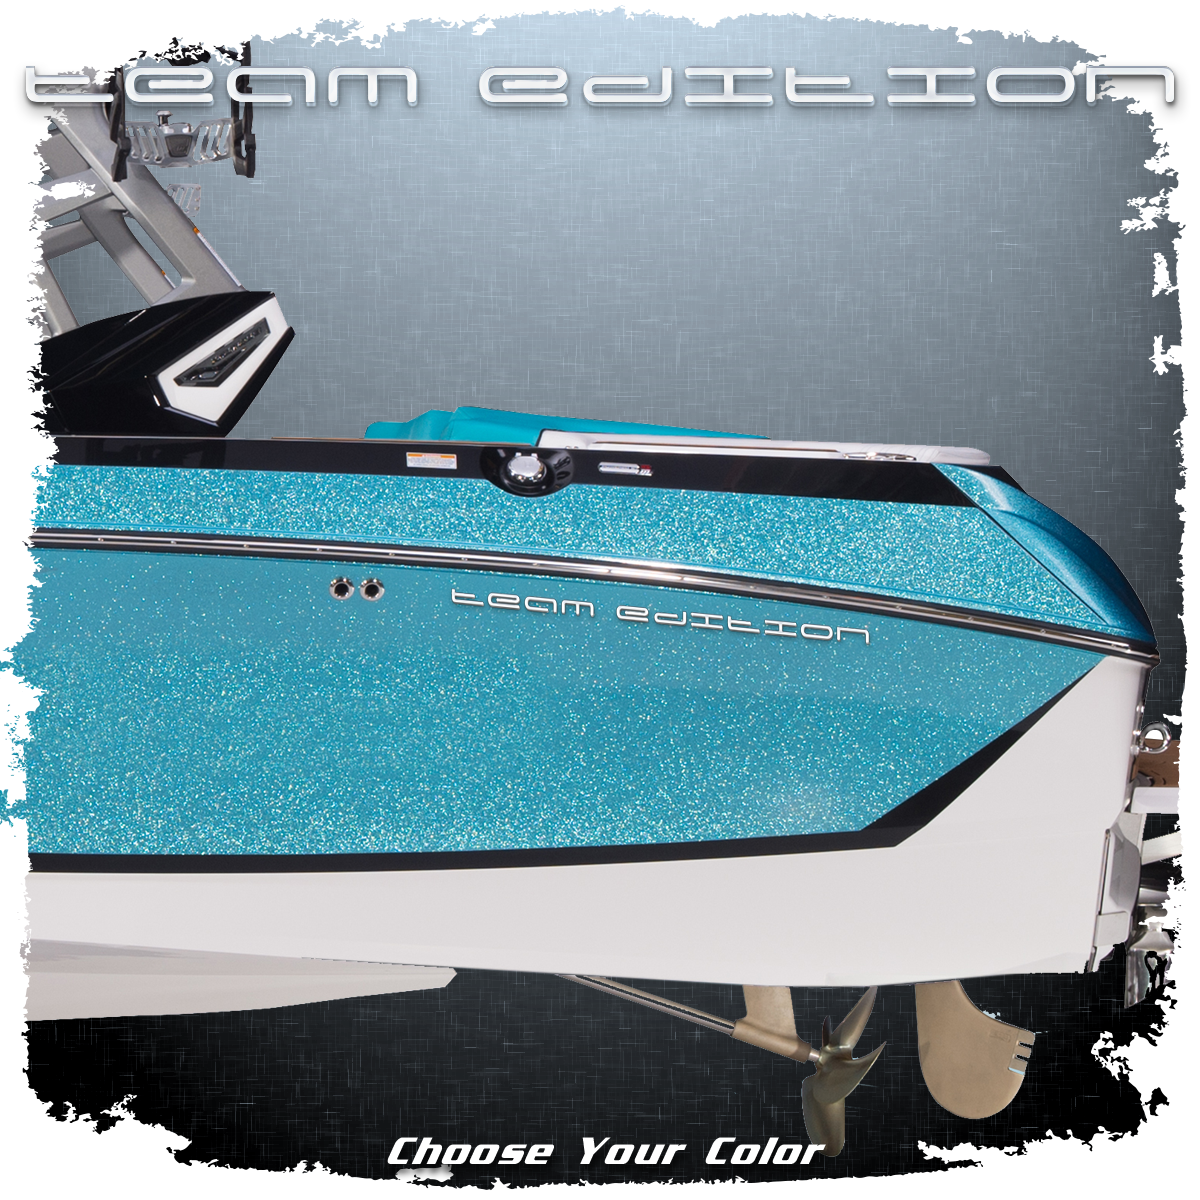 "Domed Nautique ""Team Edition"" Decal, Choose Your Color (1 included)"